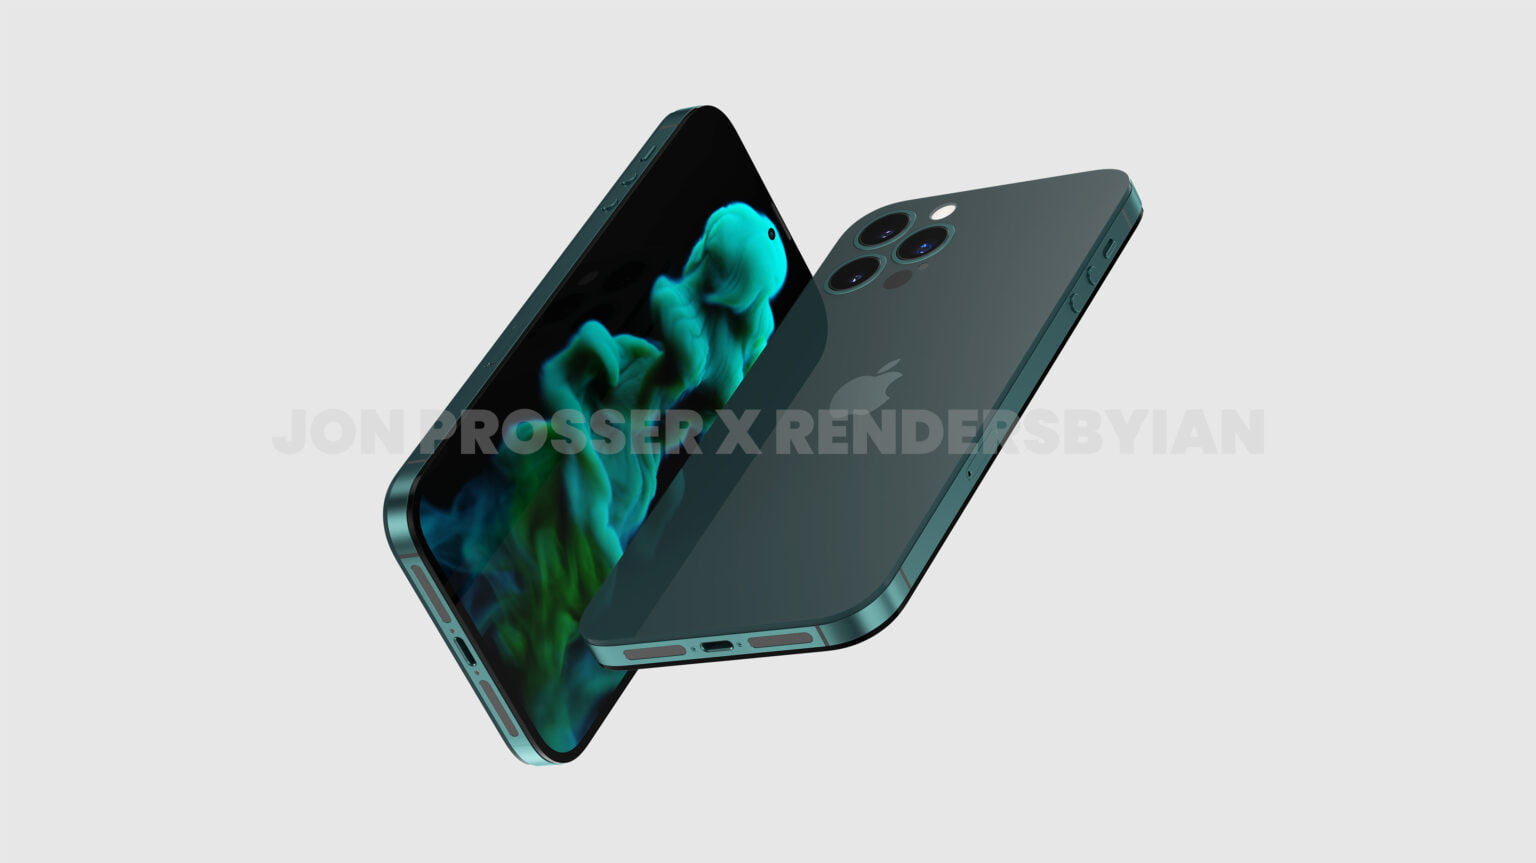 Renders purportedly showing off the iPhone 14 and its notchless front.